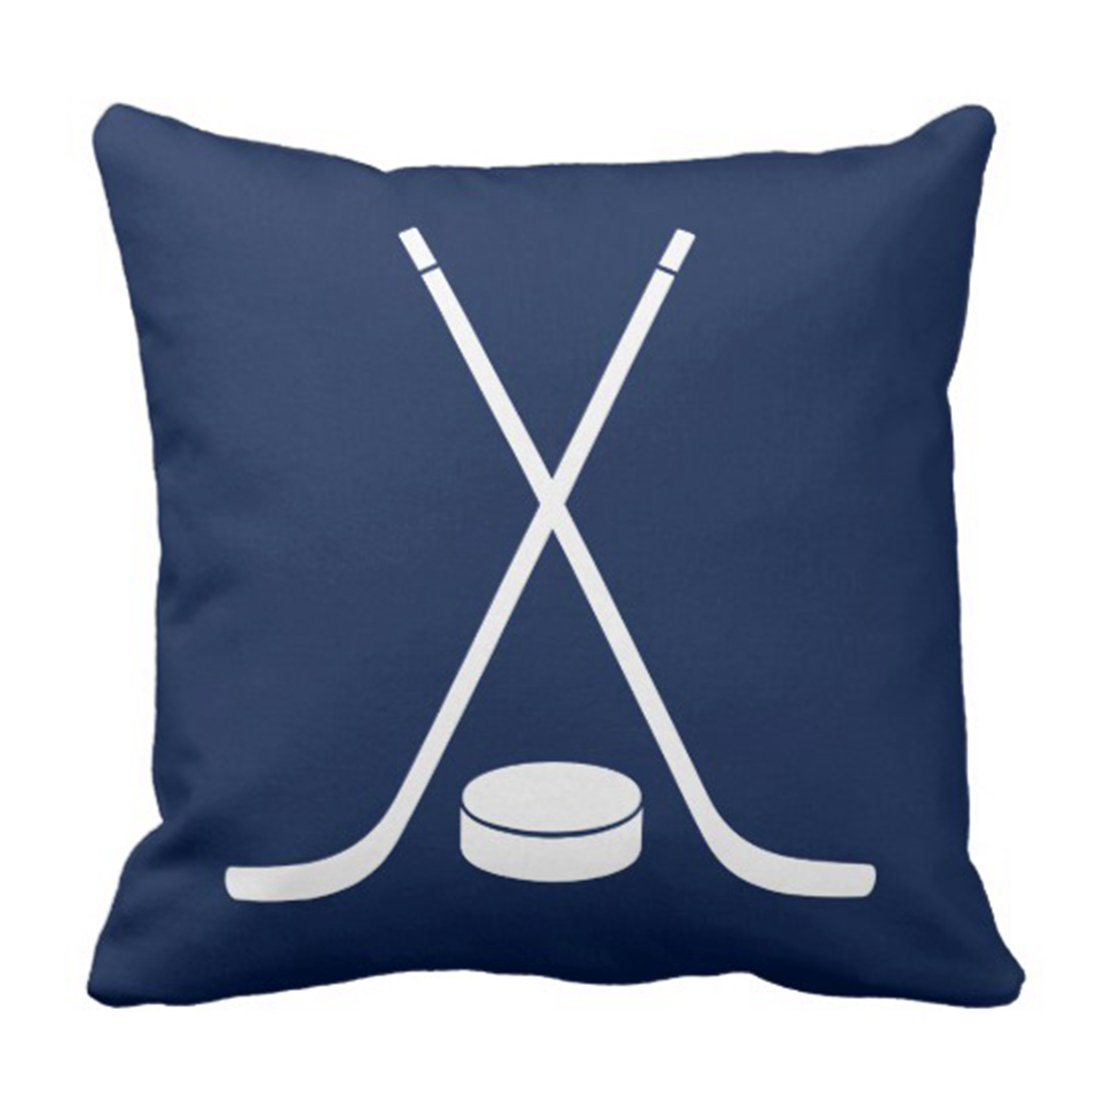 Emvency Throw Pillow Cover Nursery Hockey Sports in Navy Blue Sticks Decorative Pillow Case Home Decor Square 18x18 Inch Pillowcase